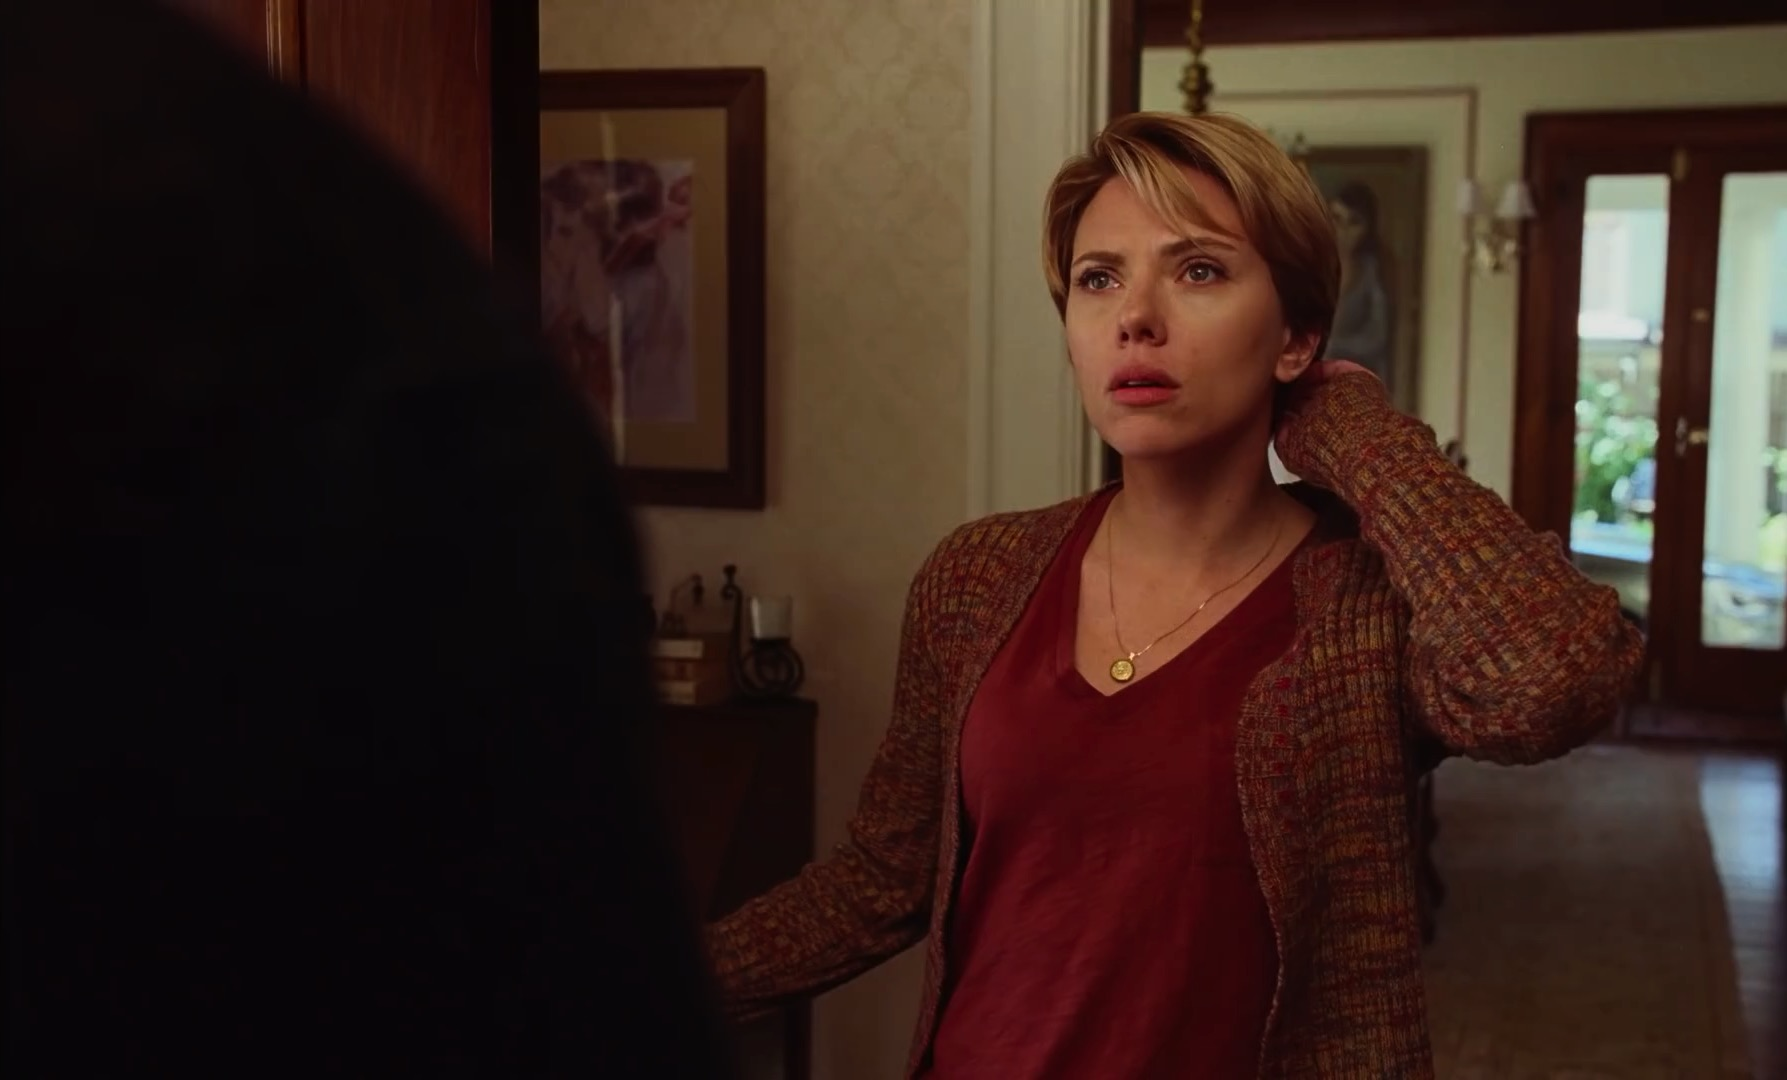 Scarlett Johansson in Marriage Story (2019)